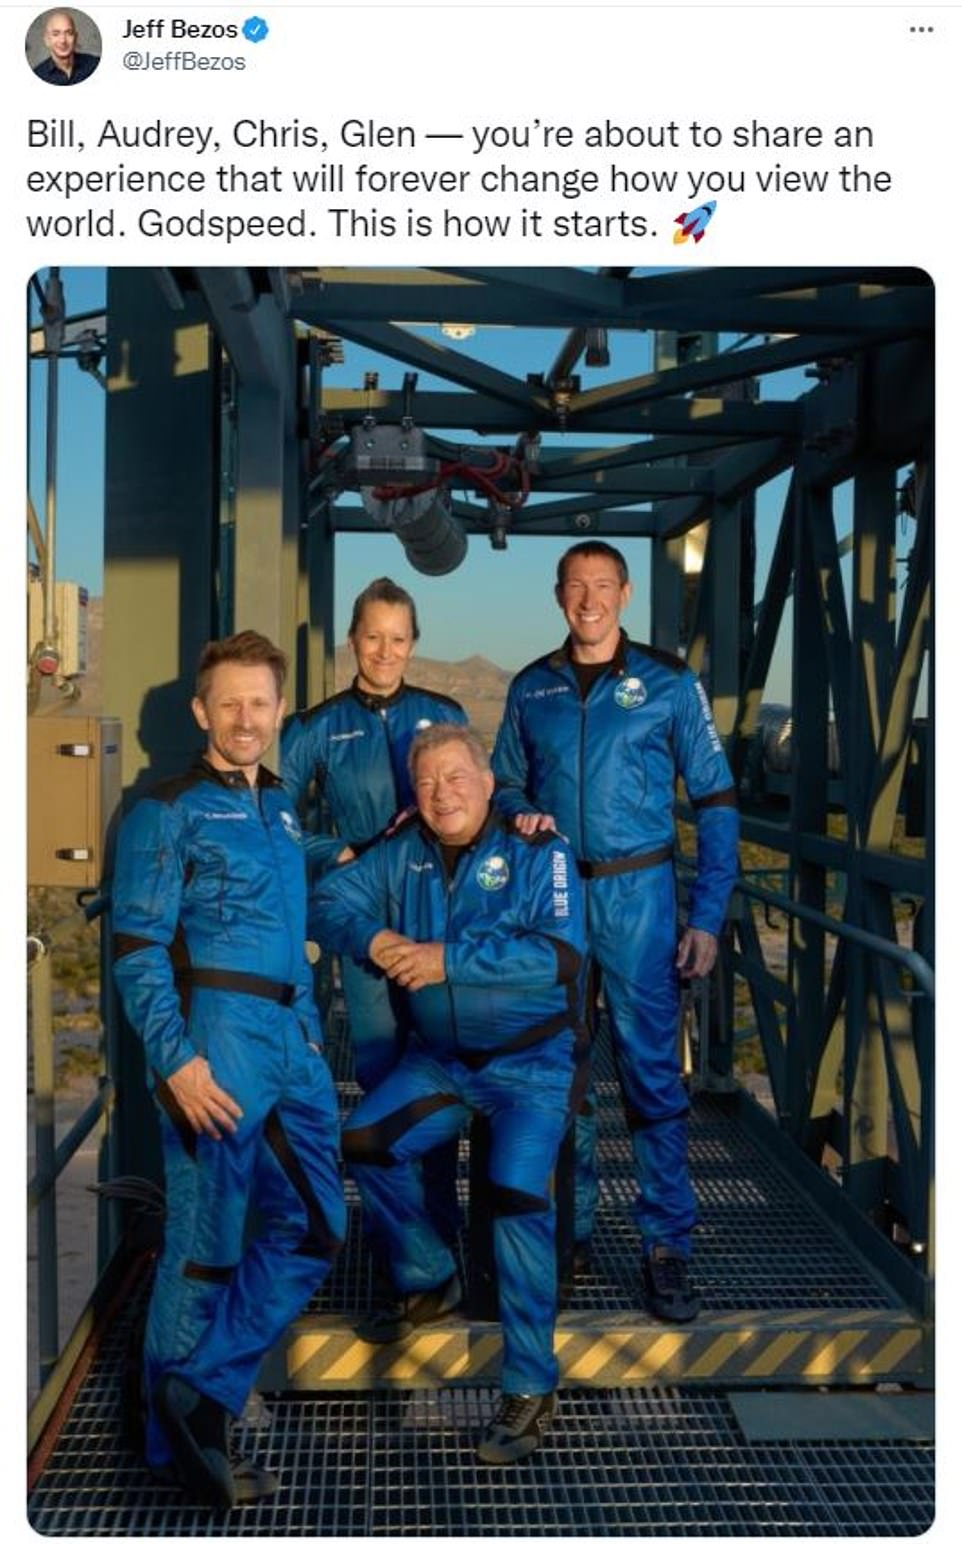 The crew, which also includes Chris Boshuizen, Glen de Vries and Audrey Powers, are launching aboard Blue Origin¿s 60-foot-tall New Shepard rocket at 10am ET from the company's Launch Site One in Van Horn, Texas